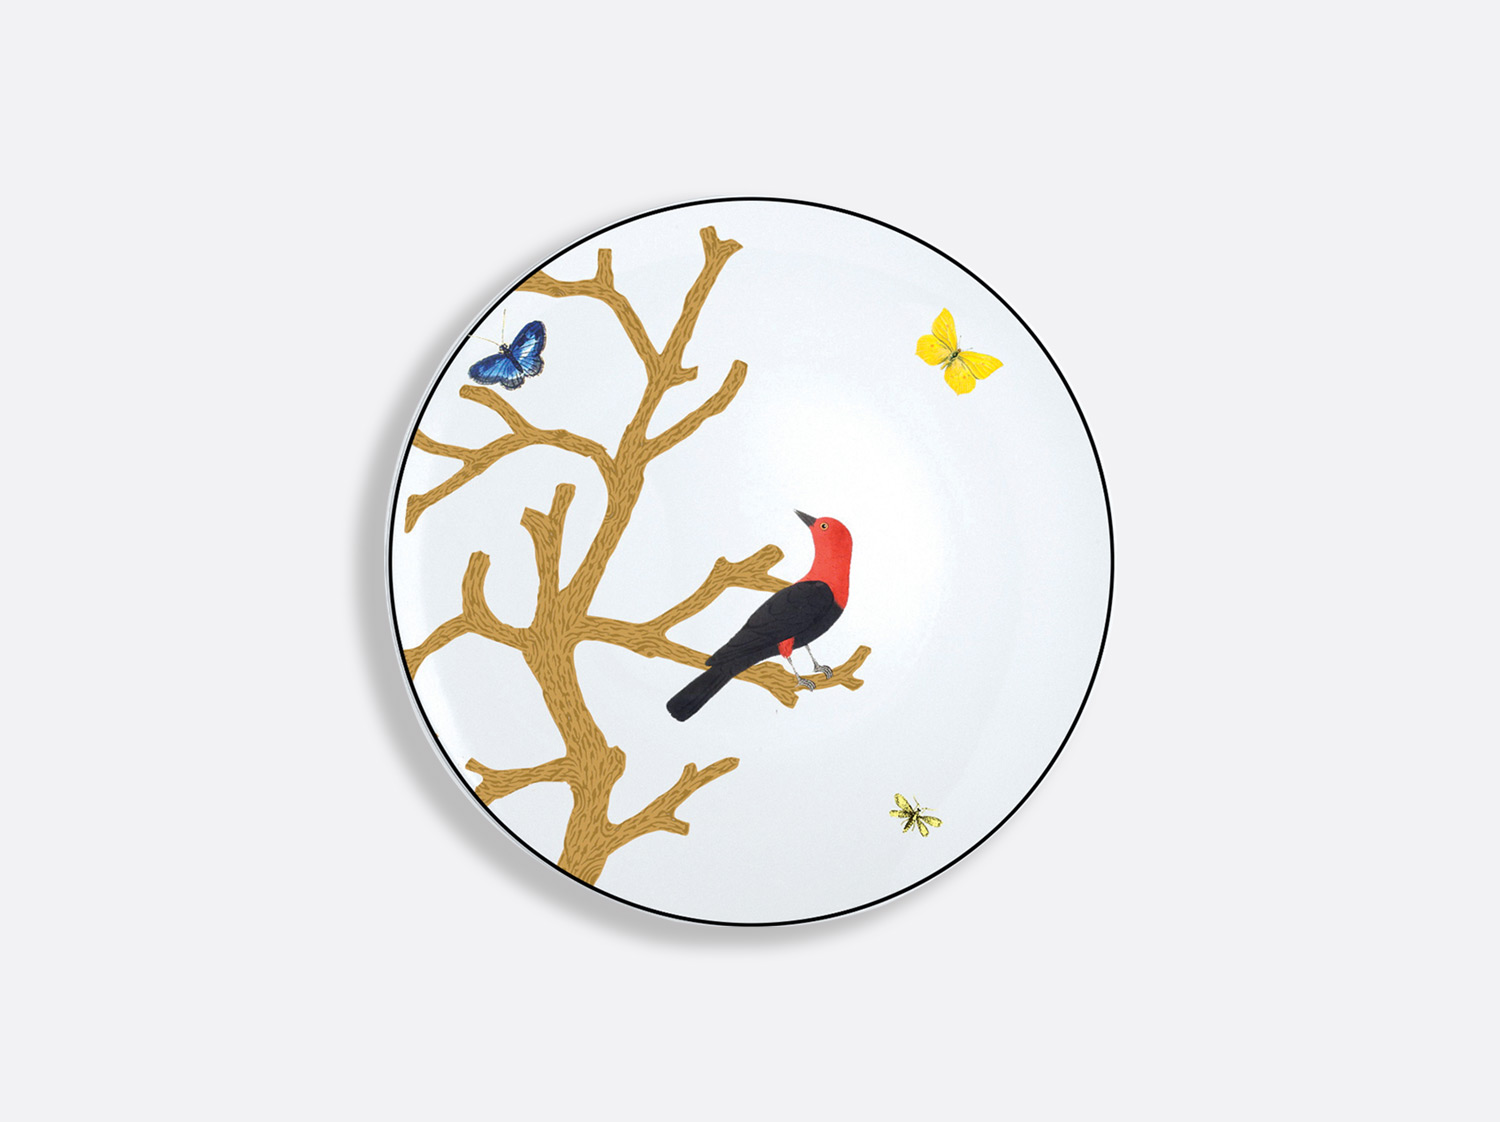 China Bread and butter plate 16 cm of the collection Aux oiseaux | Bernardaud